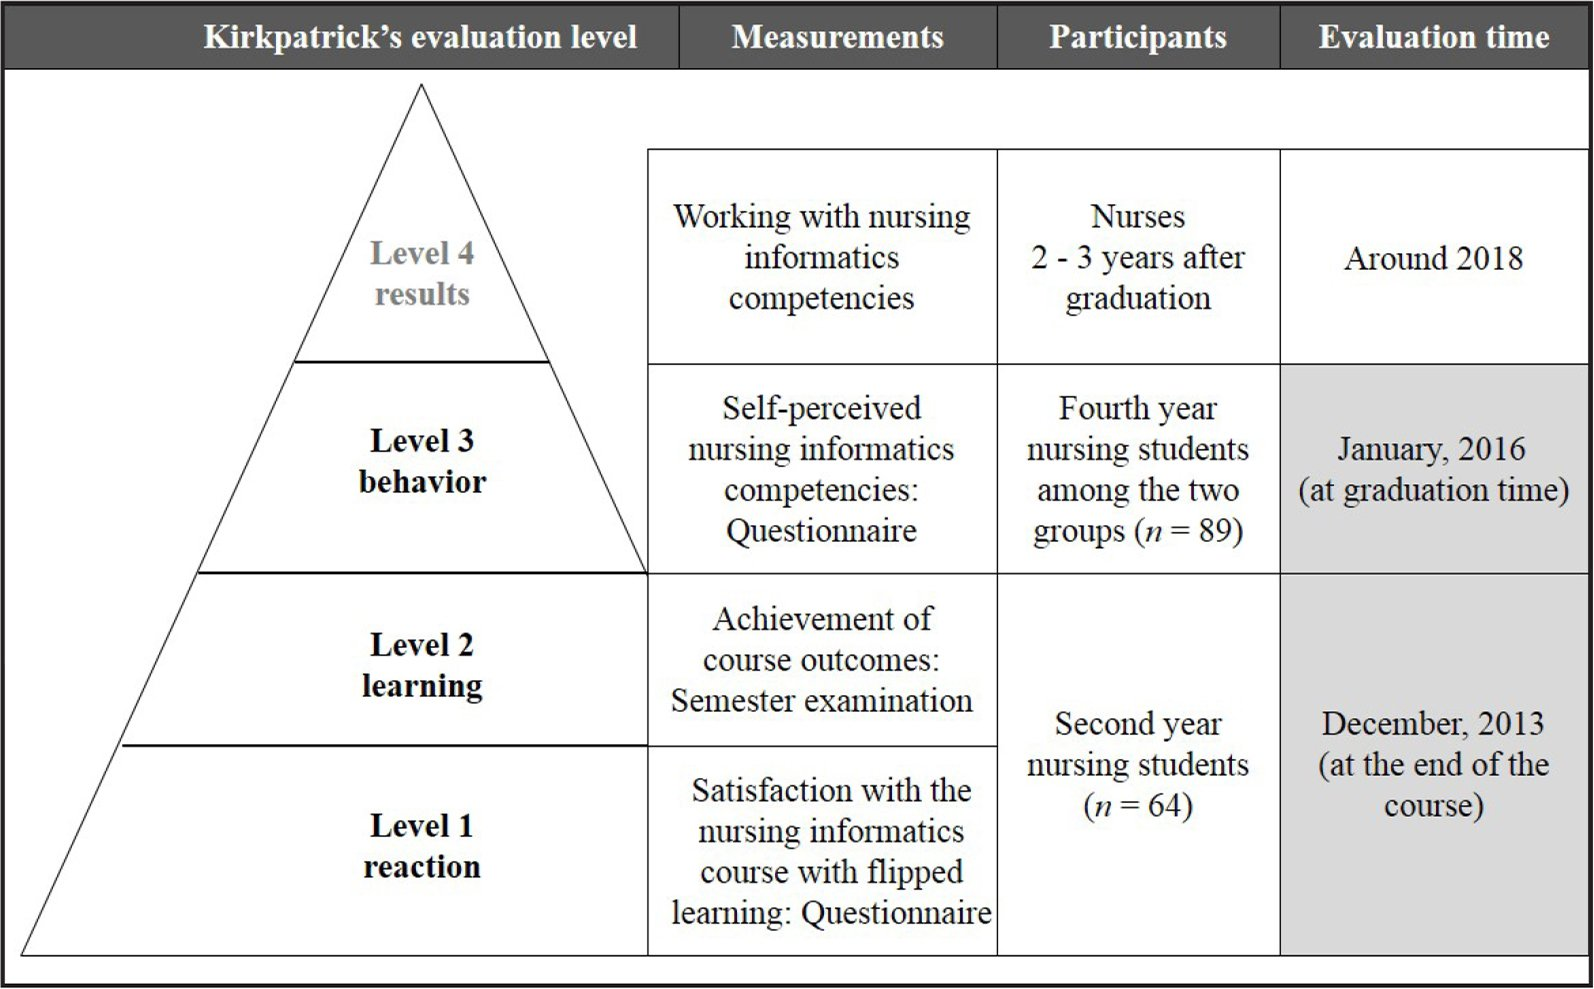 Research process based on the Kirkpatrick evaluation model (Kirkpatrick & Kirkpatrick, 2006).